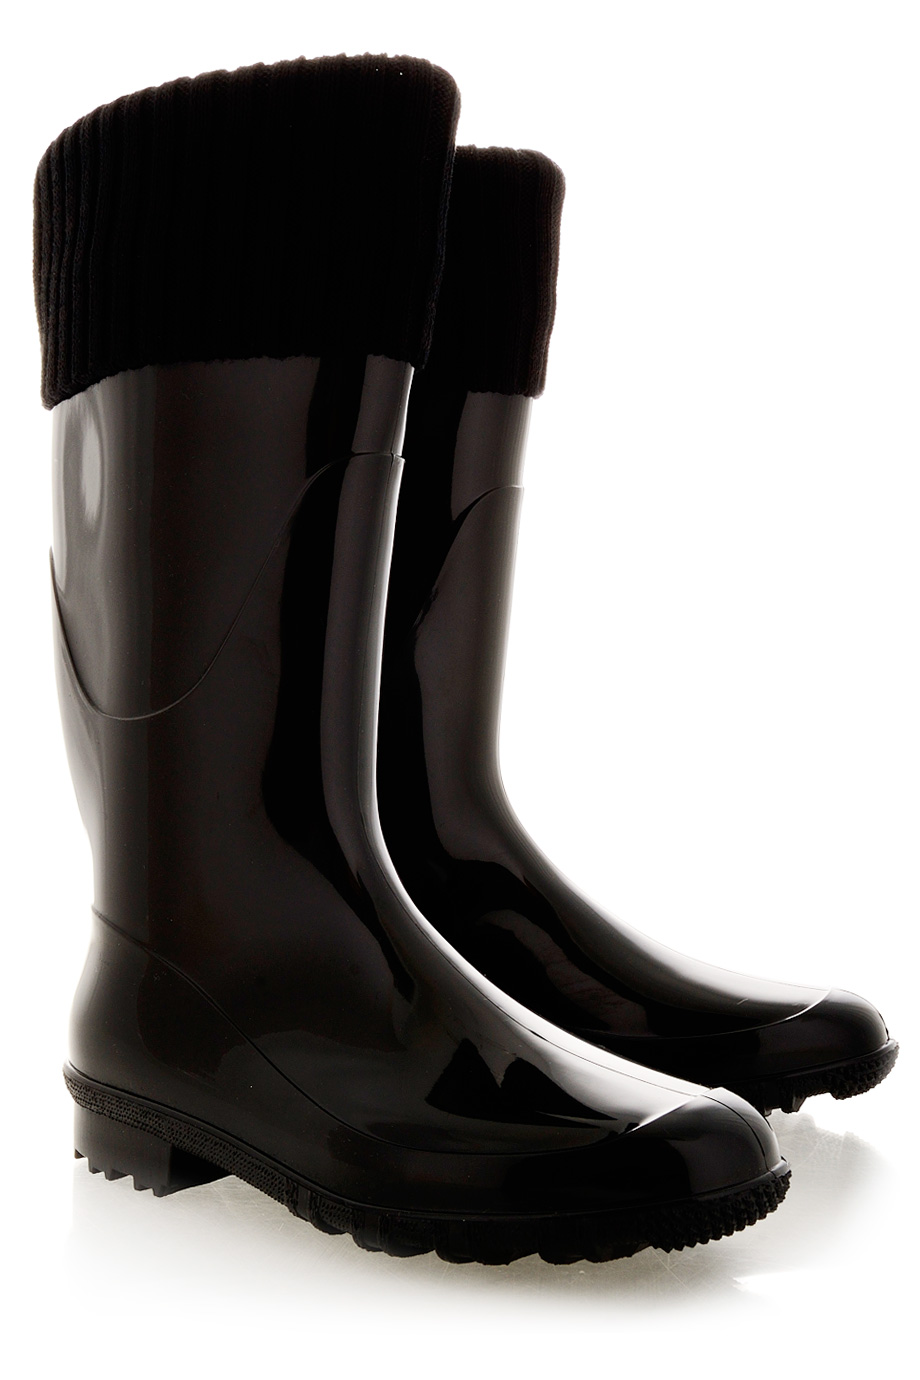 Repel The Rain In Style With Alaska Black Rain BootsBrown Beauty Babe